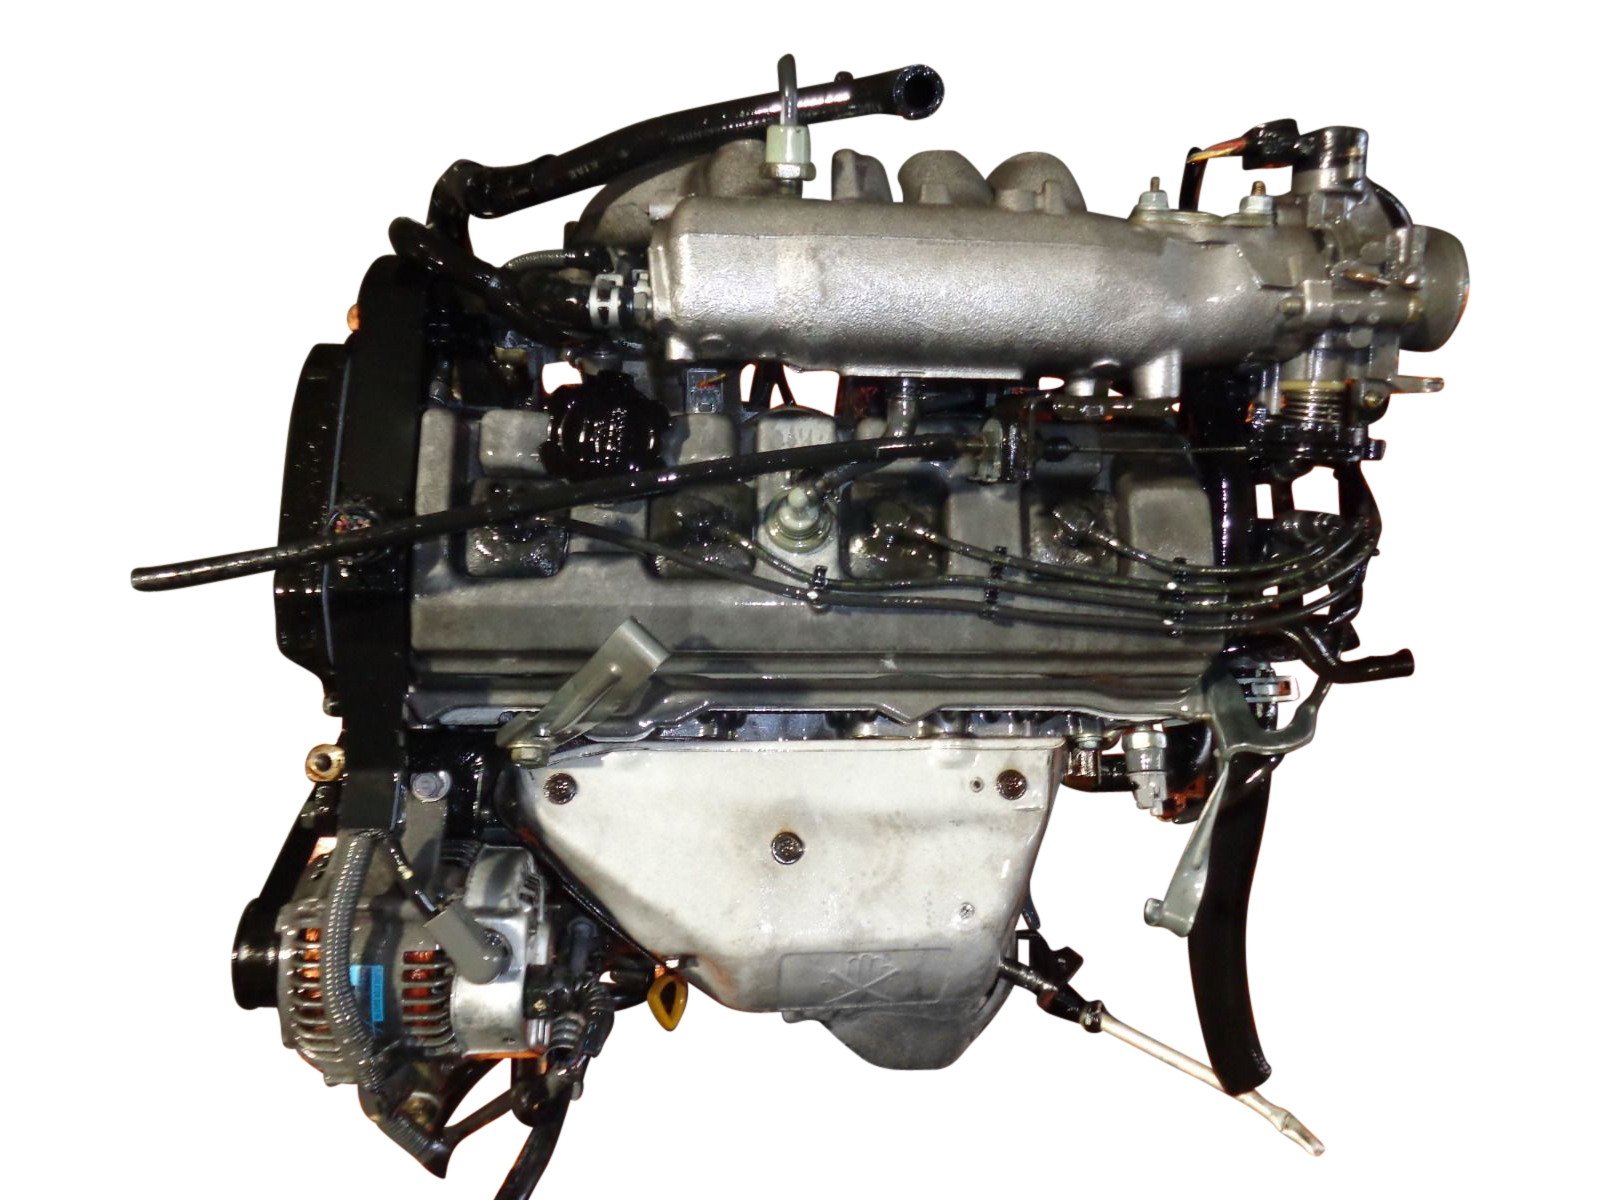 ... Engine Image-I